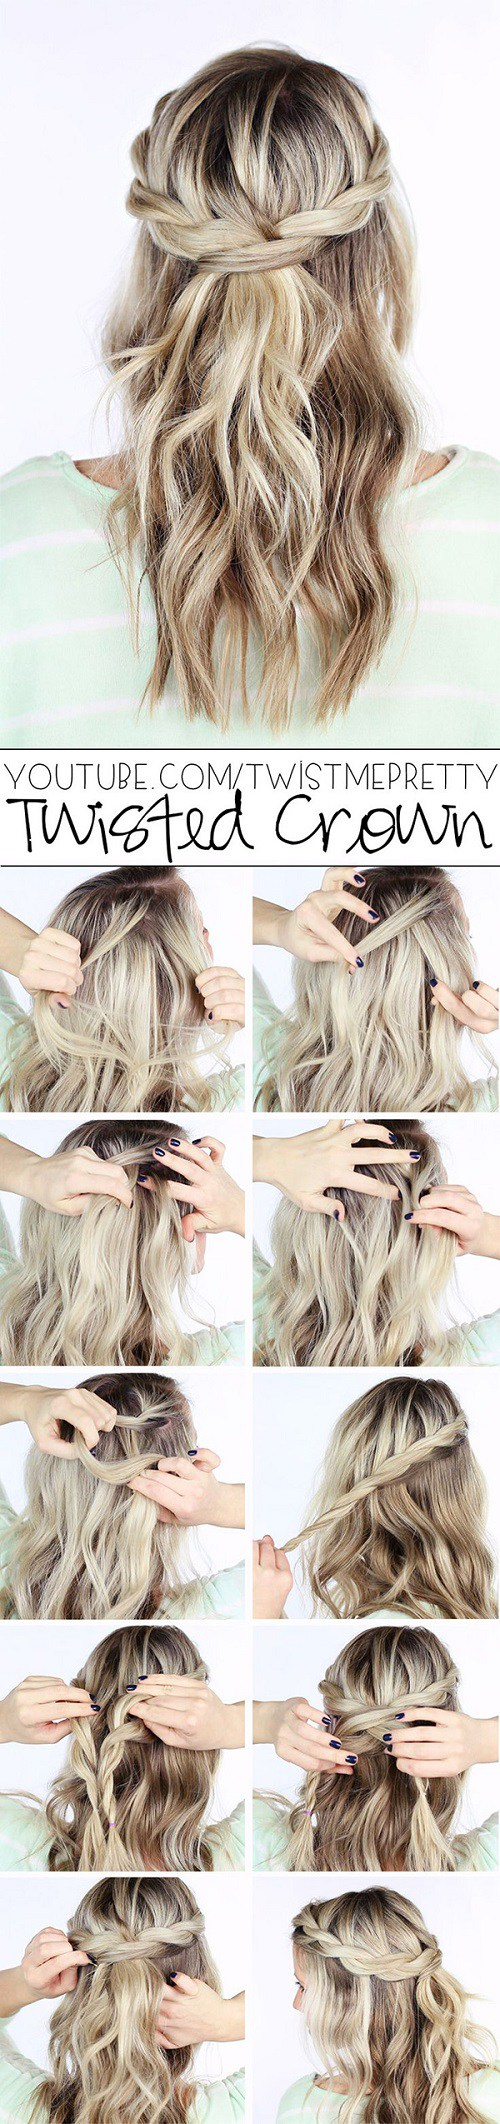 Twisted crown braid over